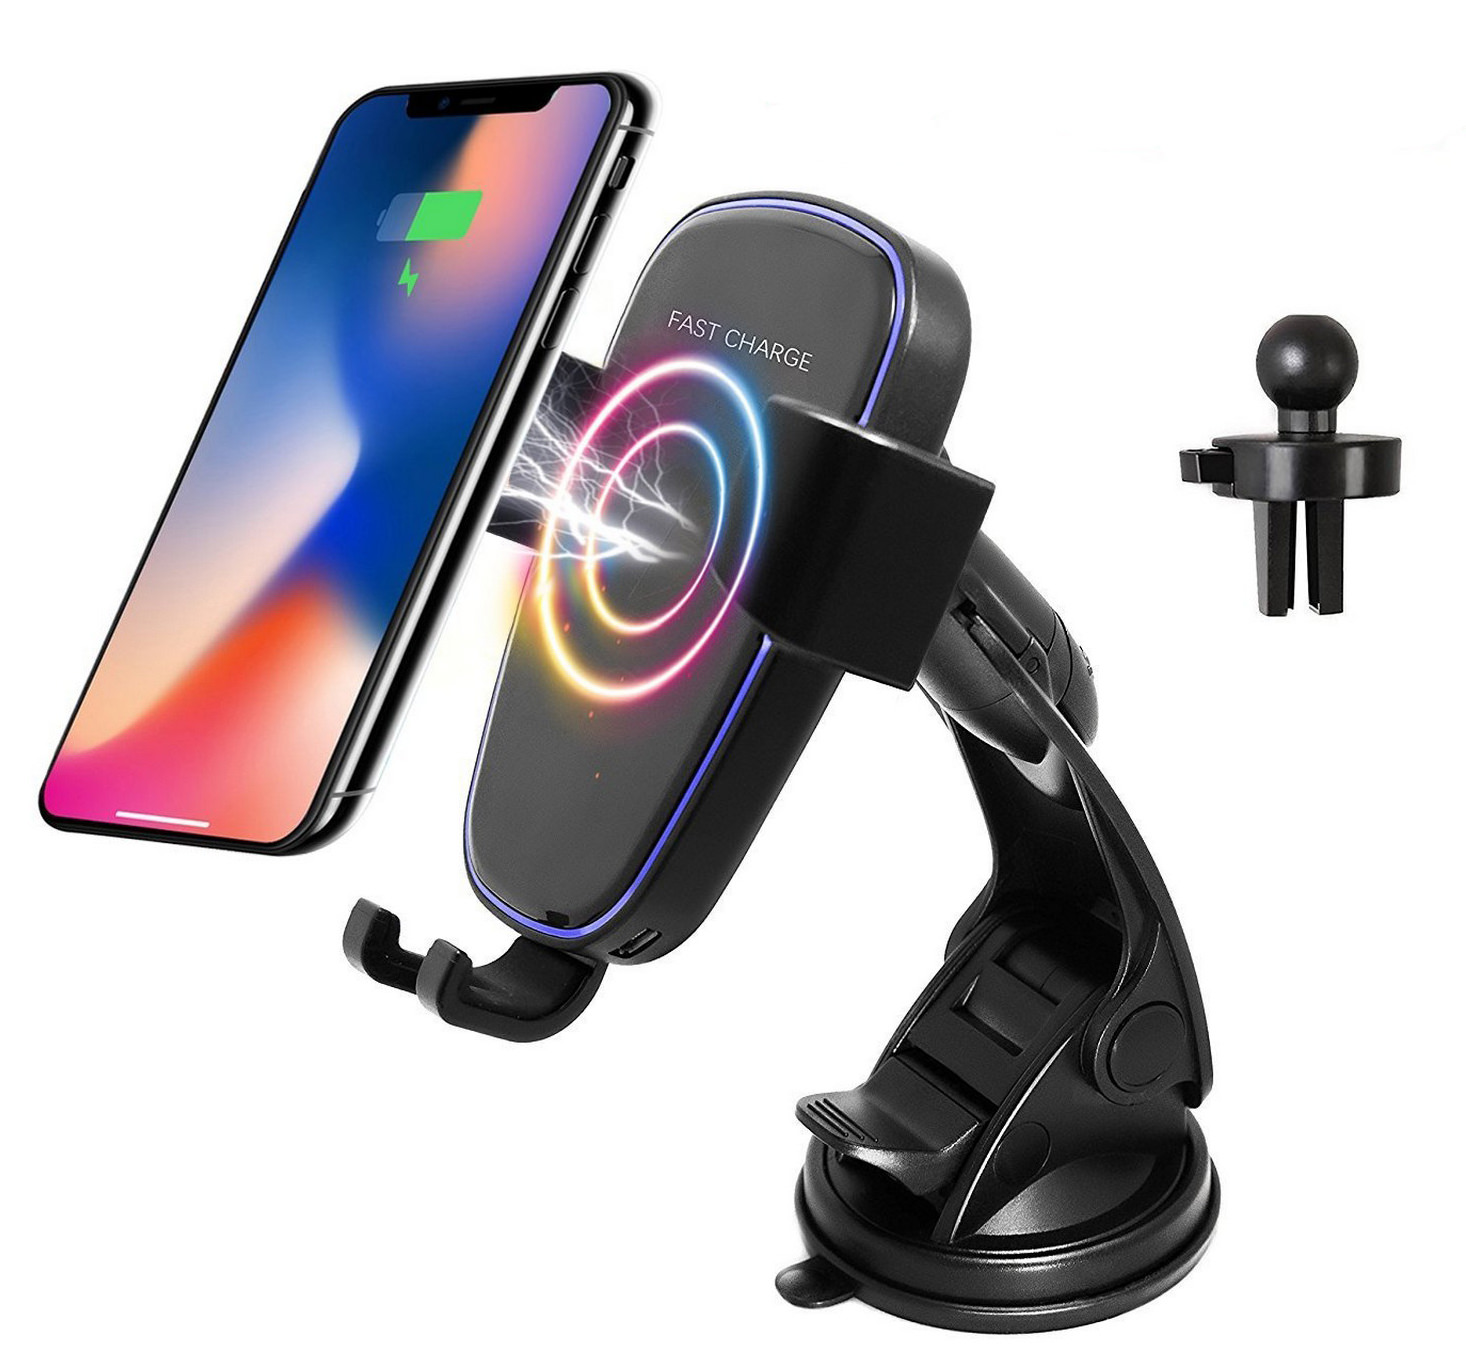 White Note 8 5 /& Standard Charge for iPhone X Lian LifeStyle Qi Wireless 2 In 1 Fast Charge Car Mount for Samsung Galaxy S8 LLSLY S7//S7 Edge 8//8 Plus /& Qi Enabled Devices IW10